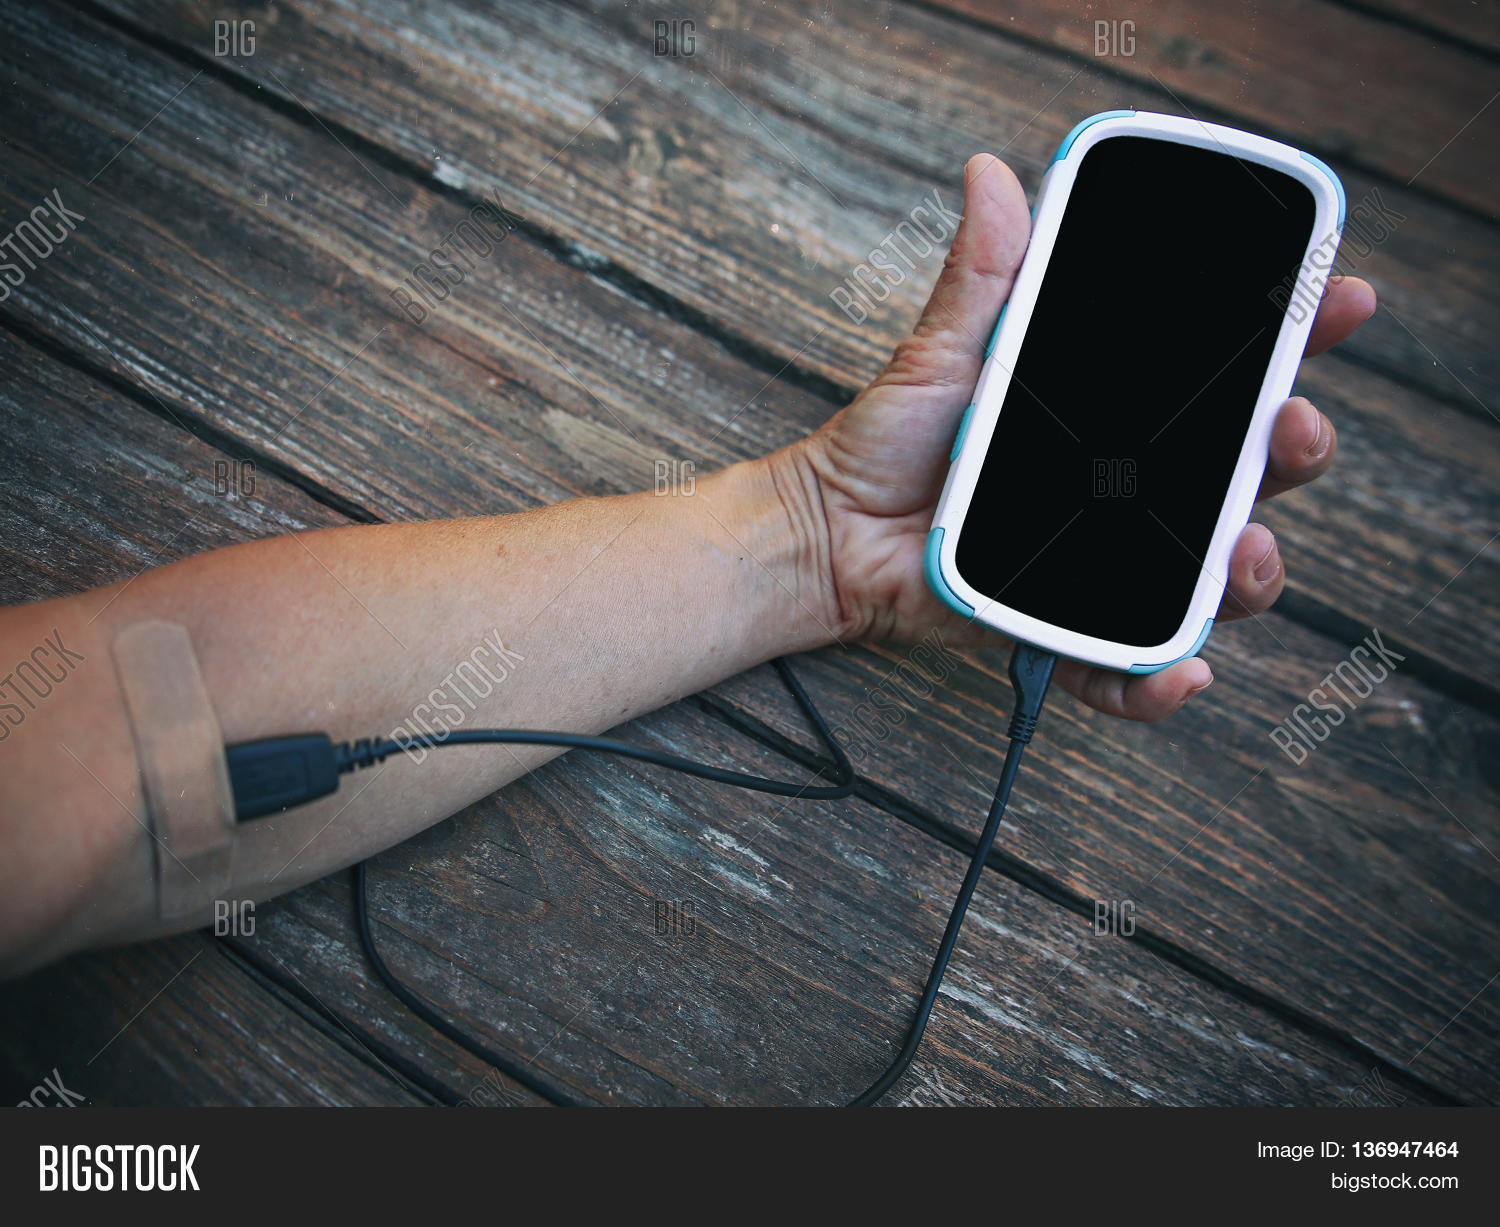 Arm Cell Phone Hooked Image & Photo (Free Trial) | Bigstock